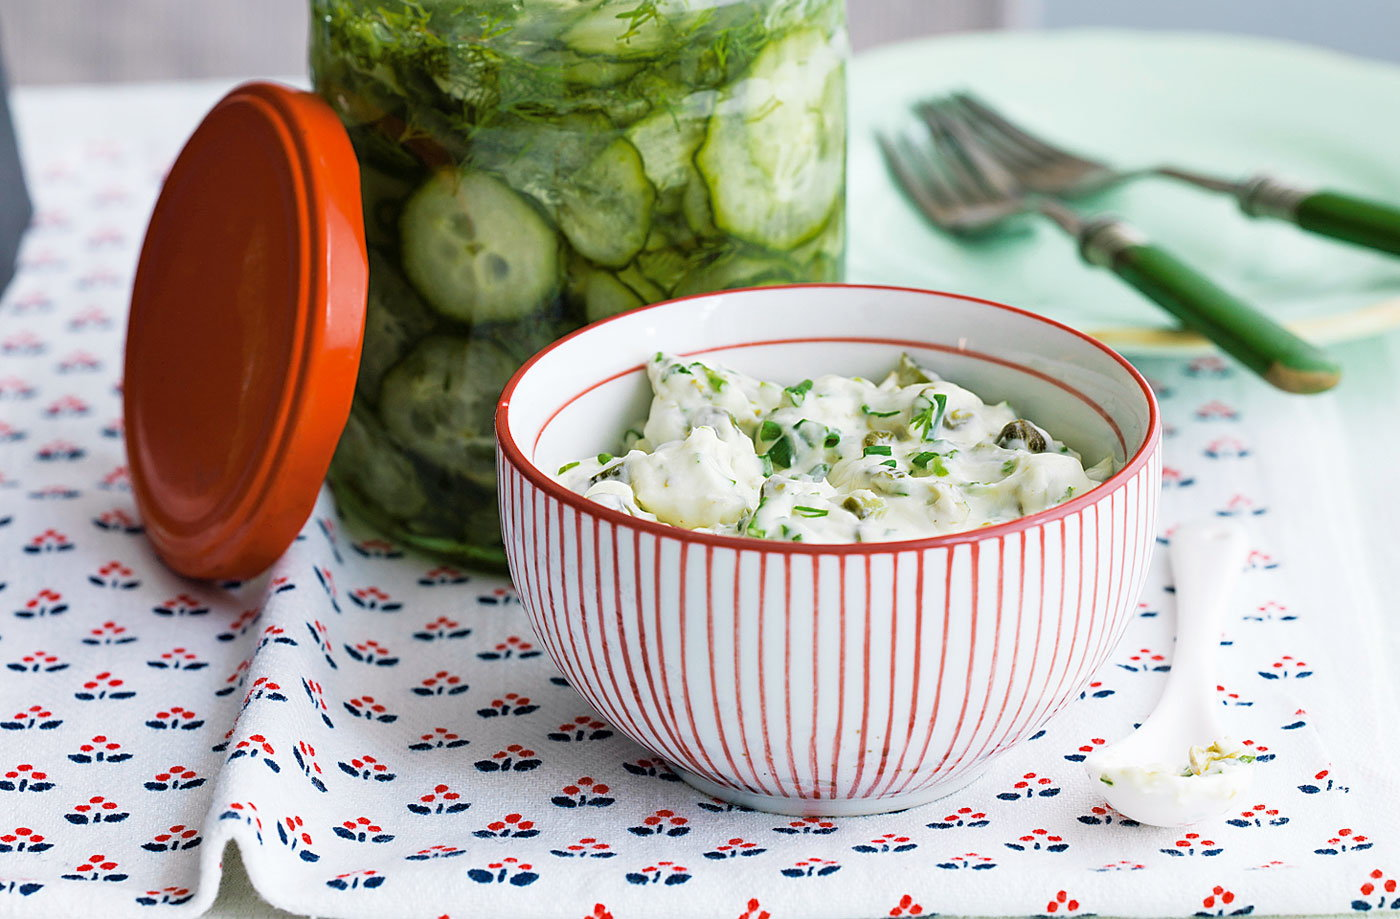 Herb remoulade